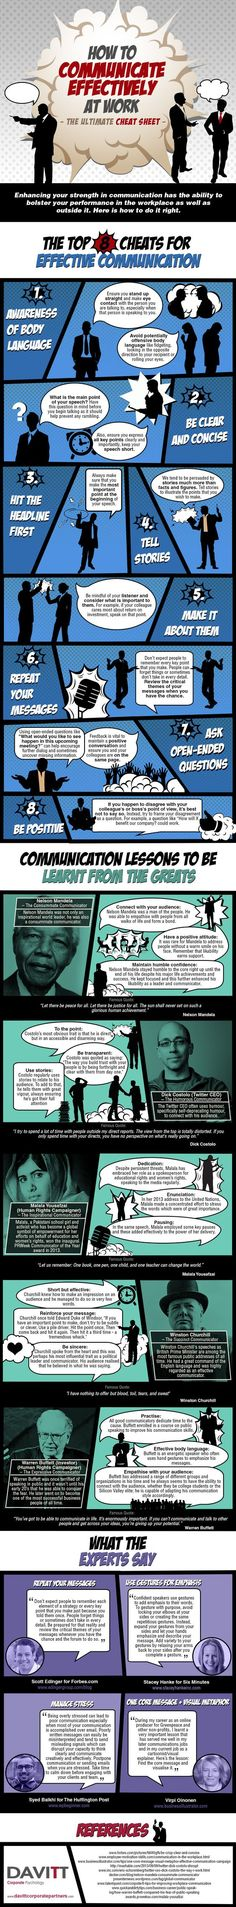 How to Communicate Effectively at Work the Ultimate Cheat Sheet #infographic #Communication #Business